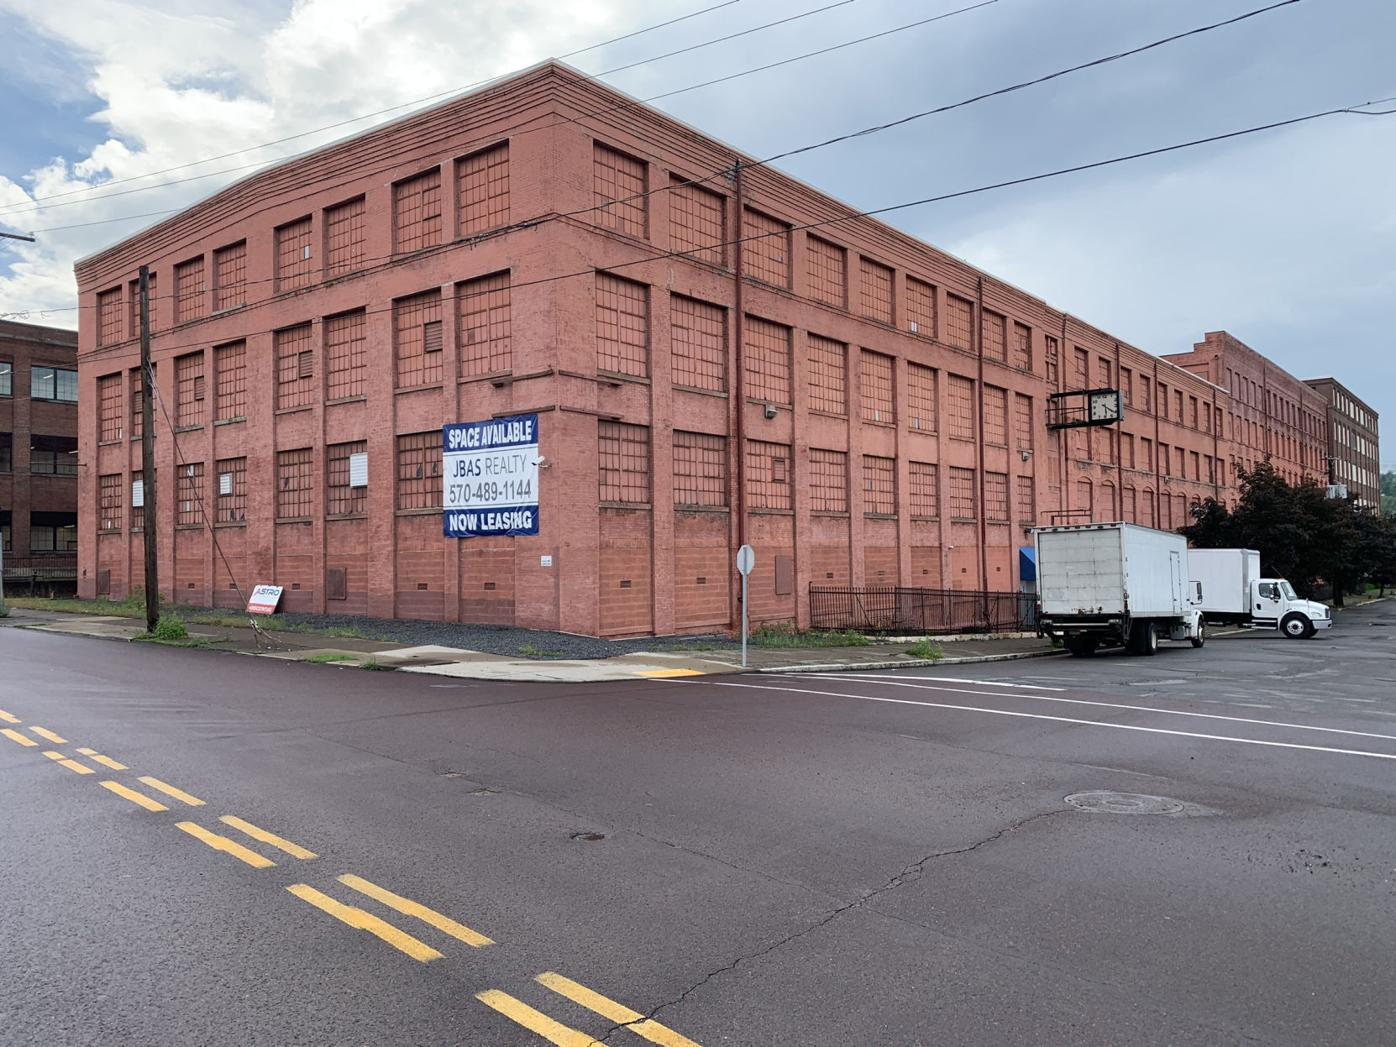 Lawsuit: New owner of big warehouse in Scranton claims former owner misrepresented tenant information